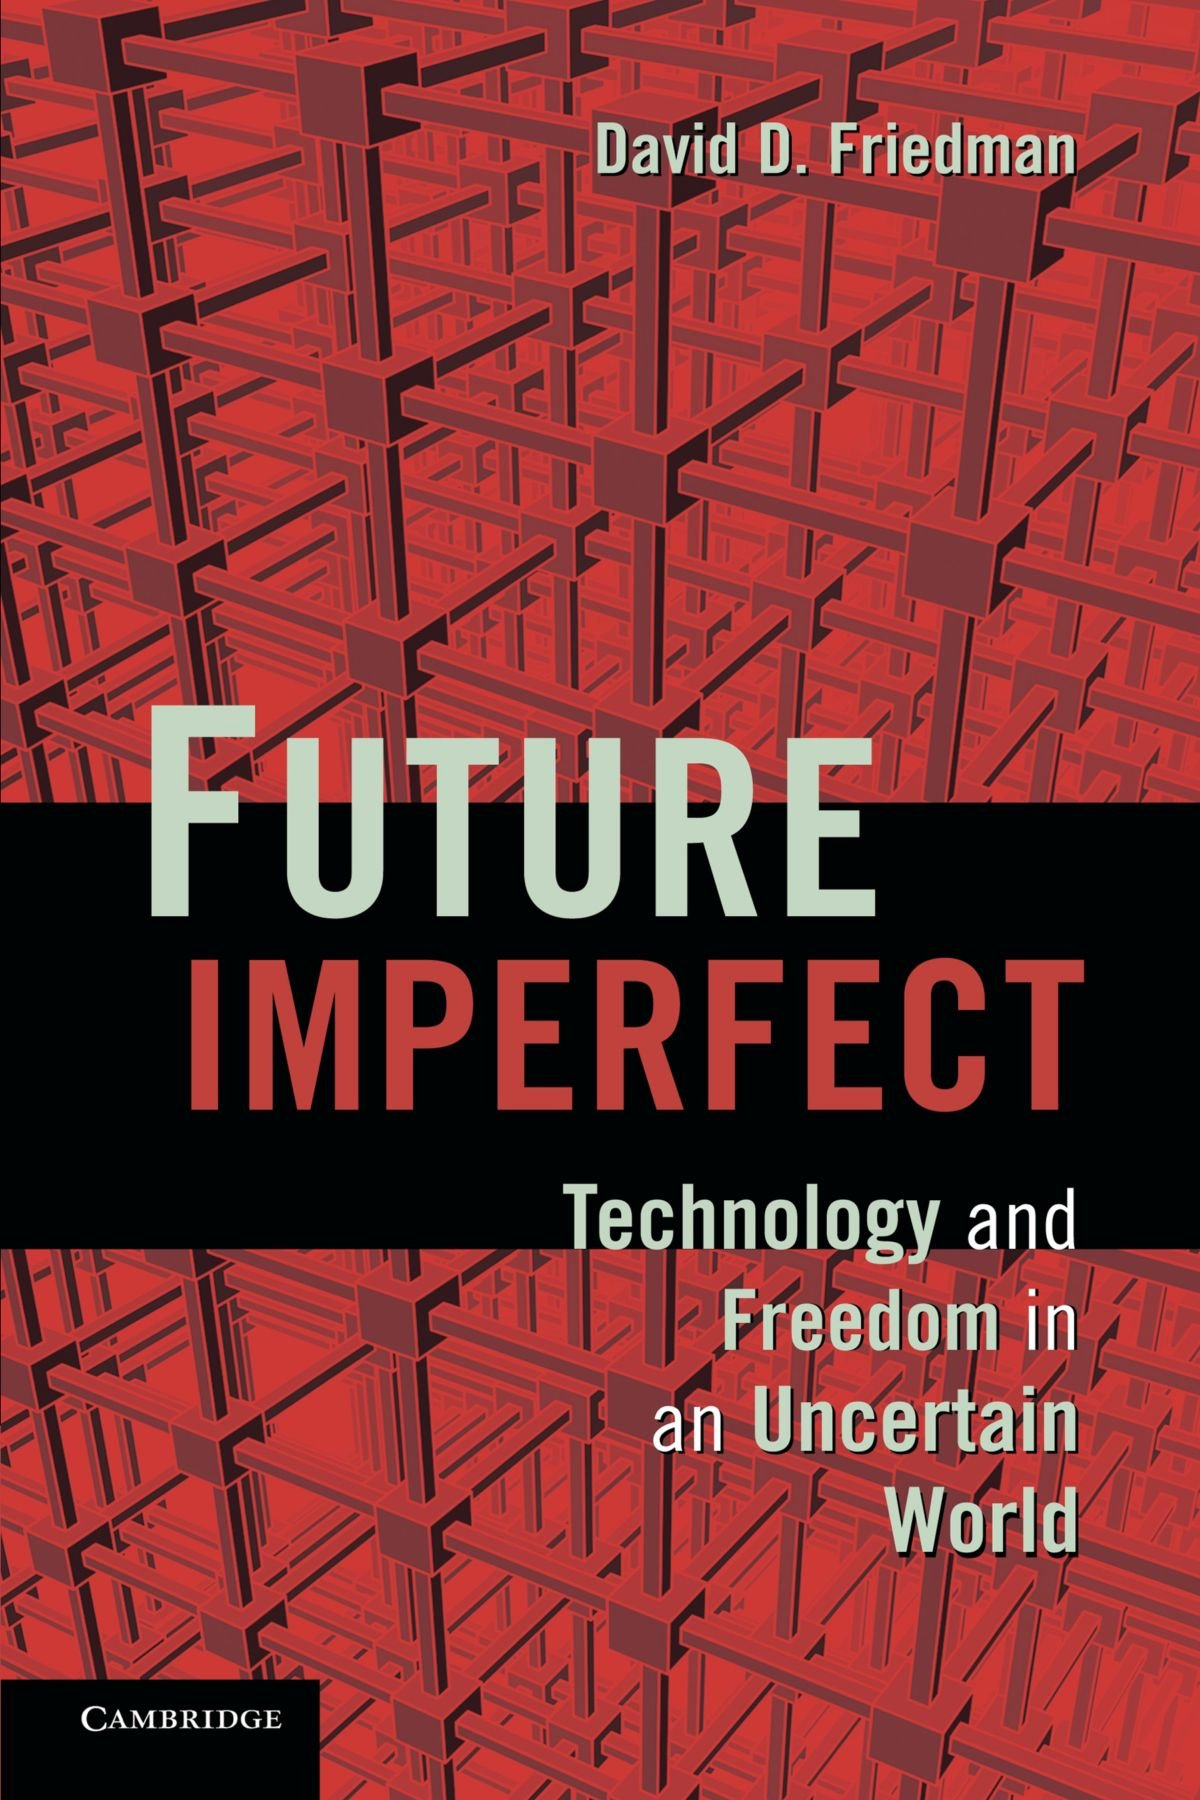 Future Imperfect: Technology and Freedom in an Uncertain World pdf